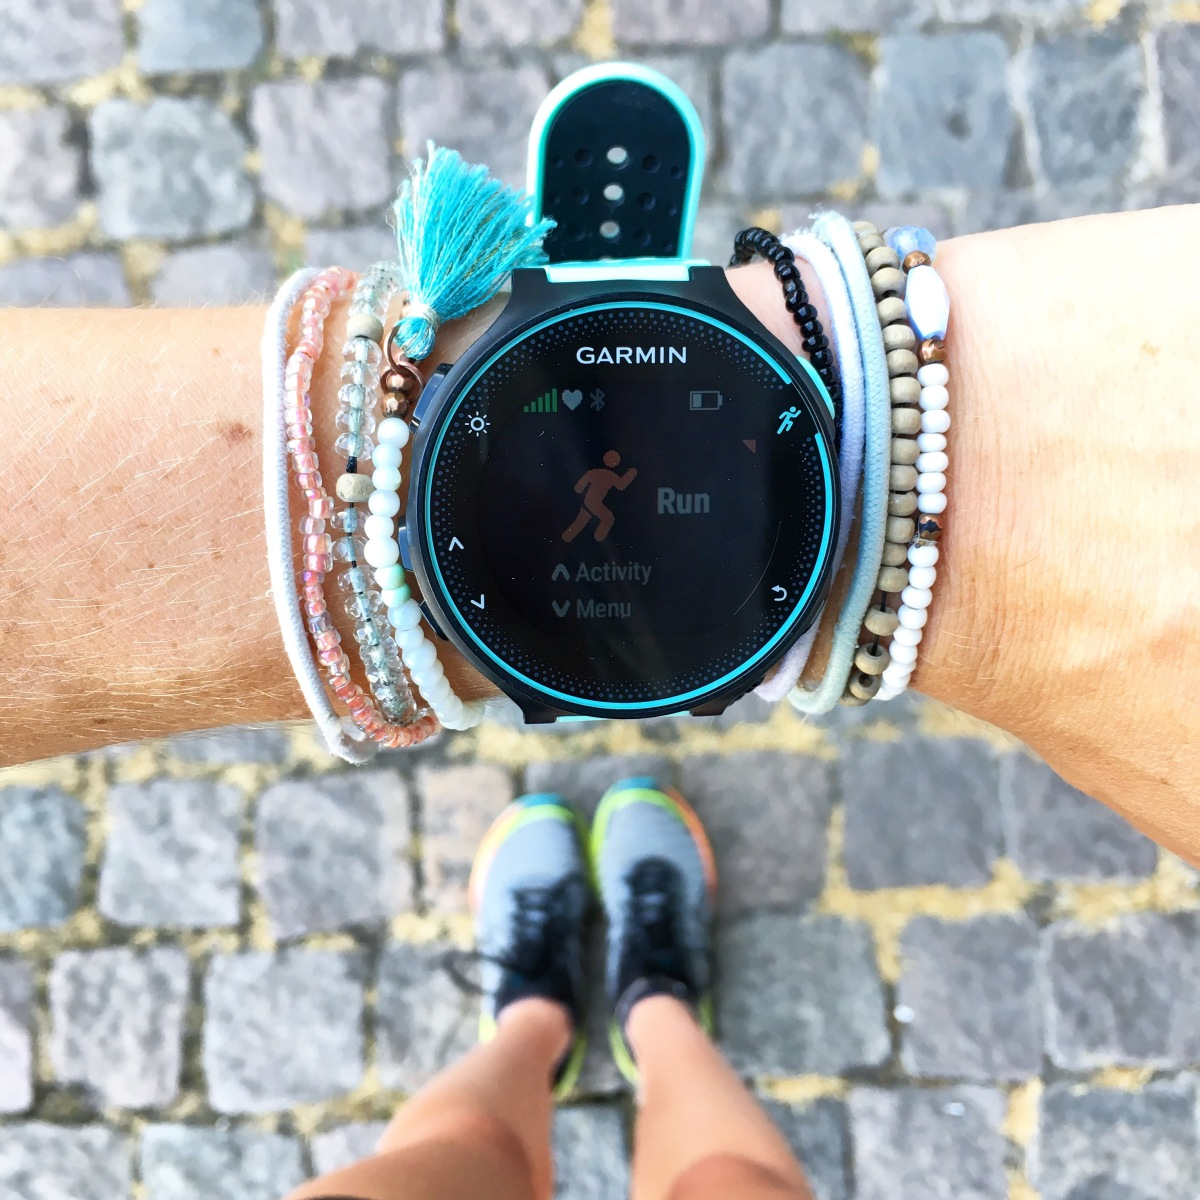 REVIEW: GARMIN FORERUNNER 235